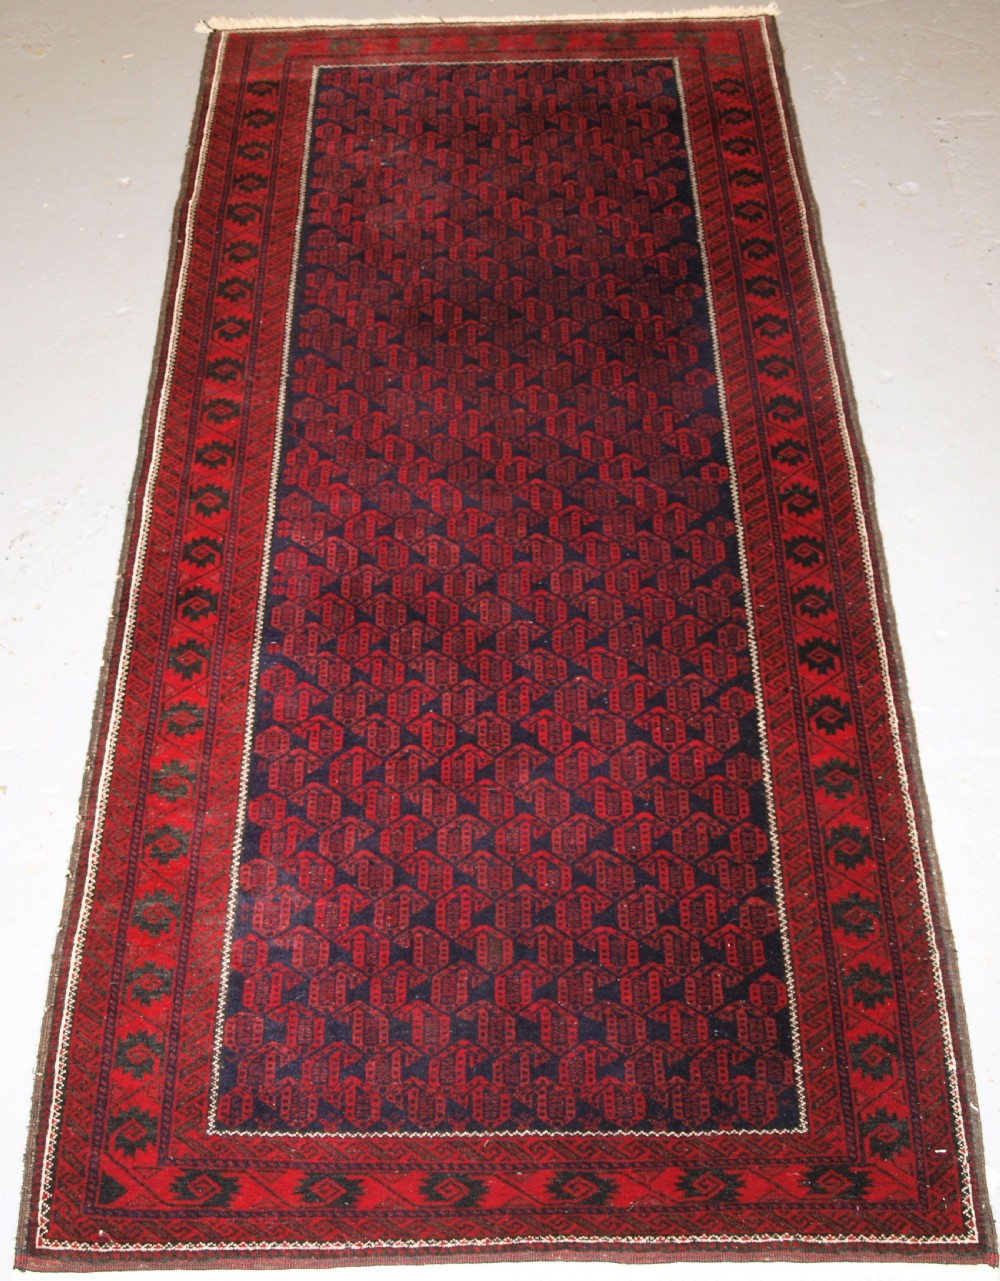 old afghan baluch rug very fine weave repeat botheh design circa 1950